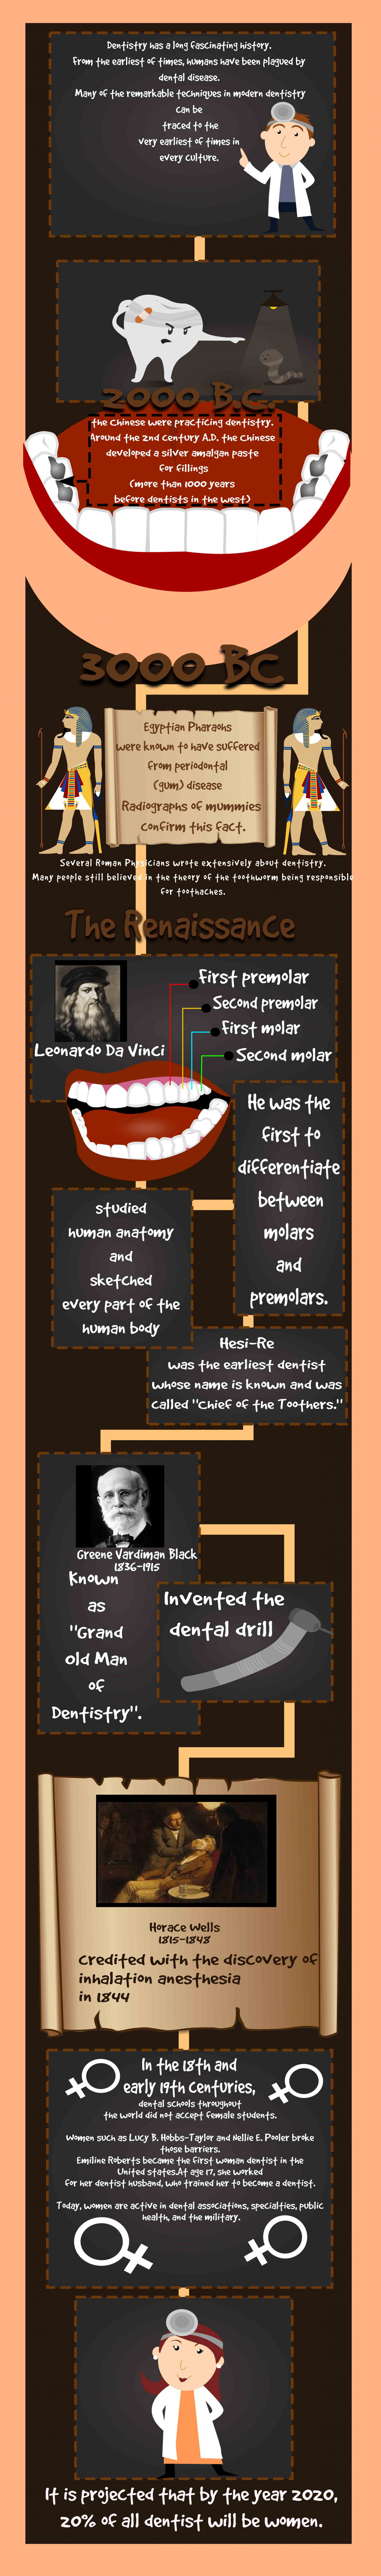 The History of Dentistry Infographic